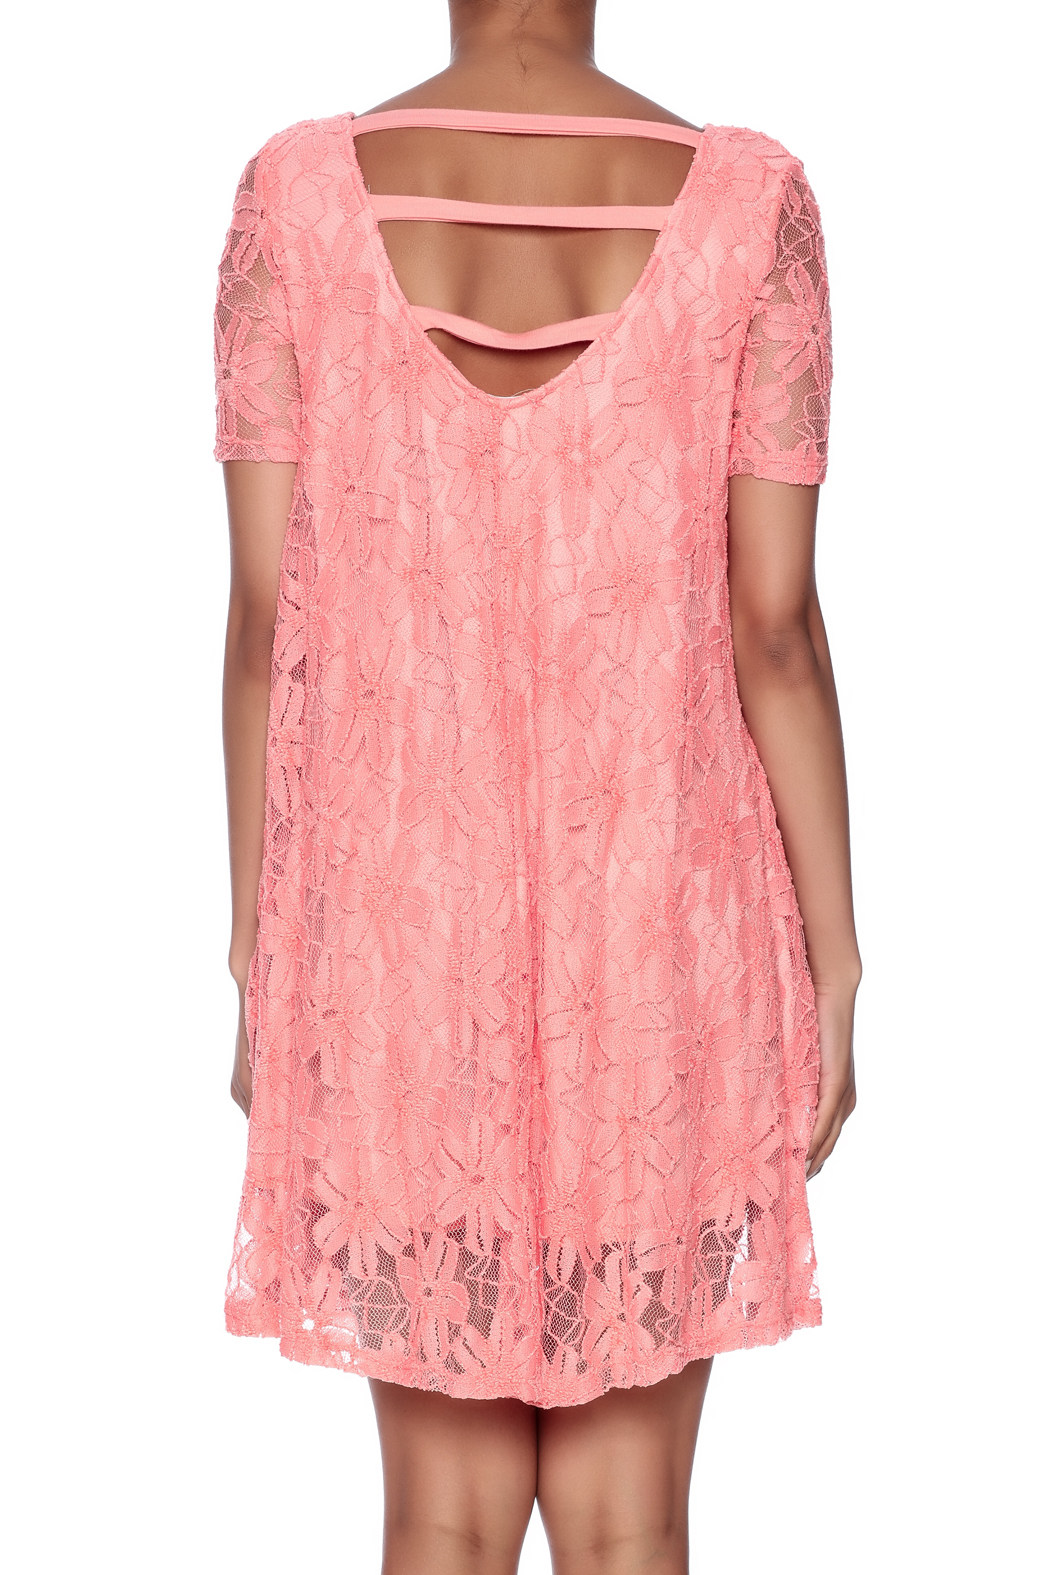 Lollipop Star Coral Lace Dress - Back Cropped Image